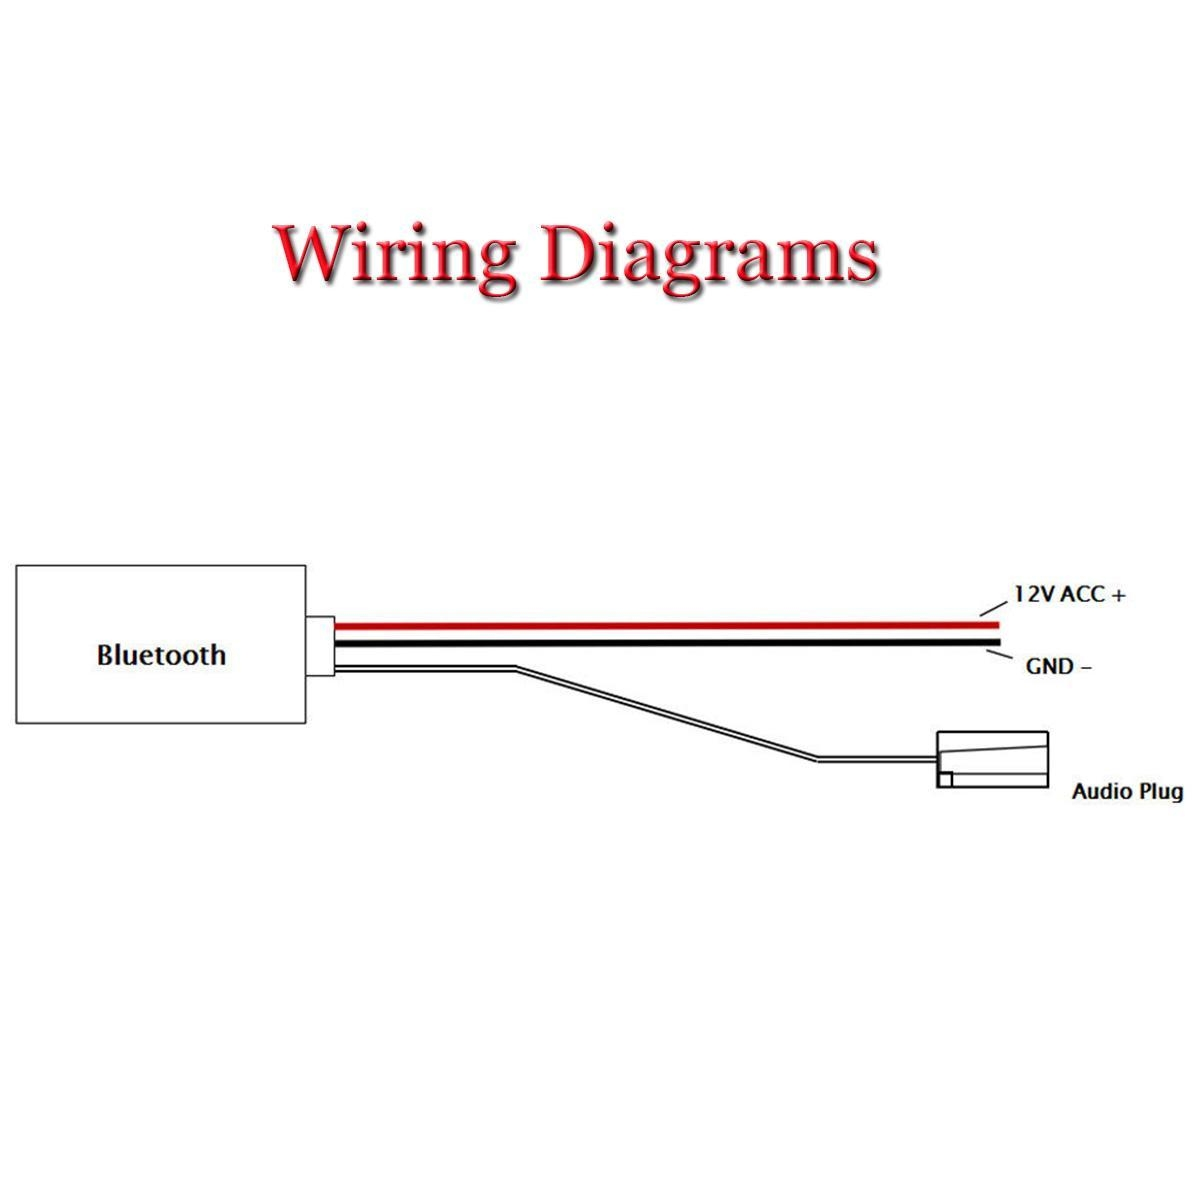 Buy Generic Bluetooth Adapter Aux Cable For Bmw Mini One Cooper S Wiring Diagram Stereo Image